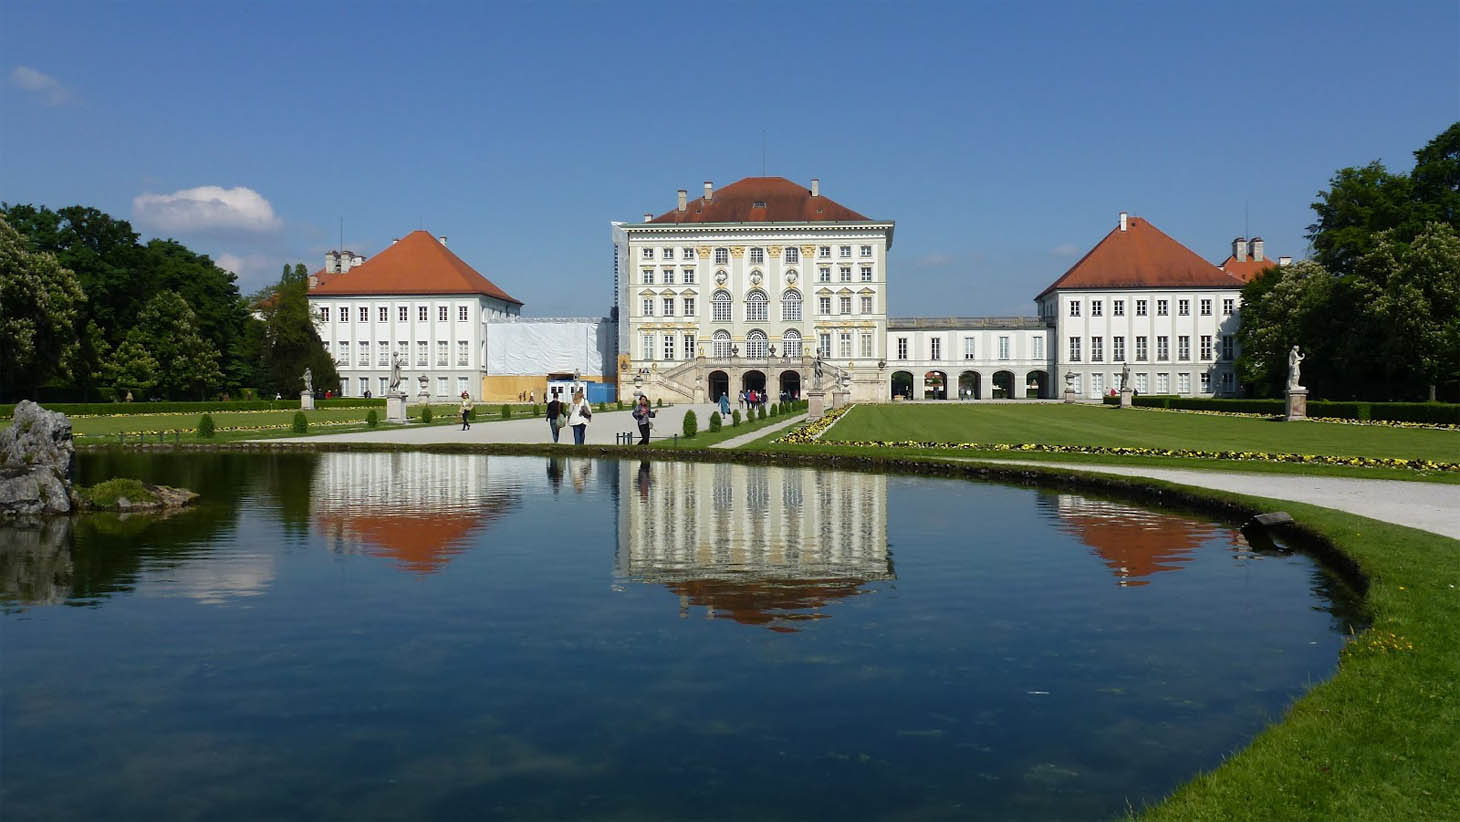 Nymphenburg Palace (Munich)